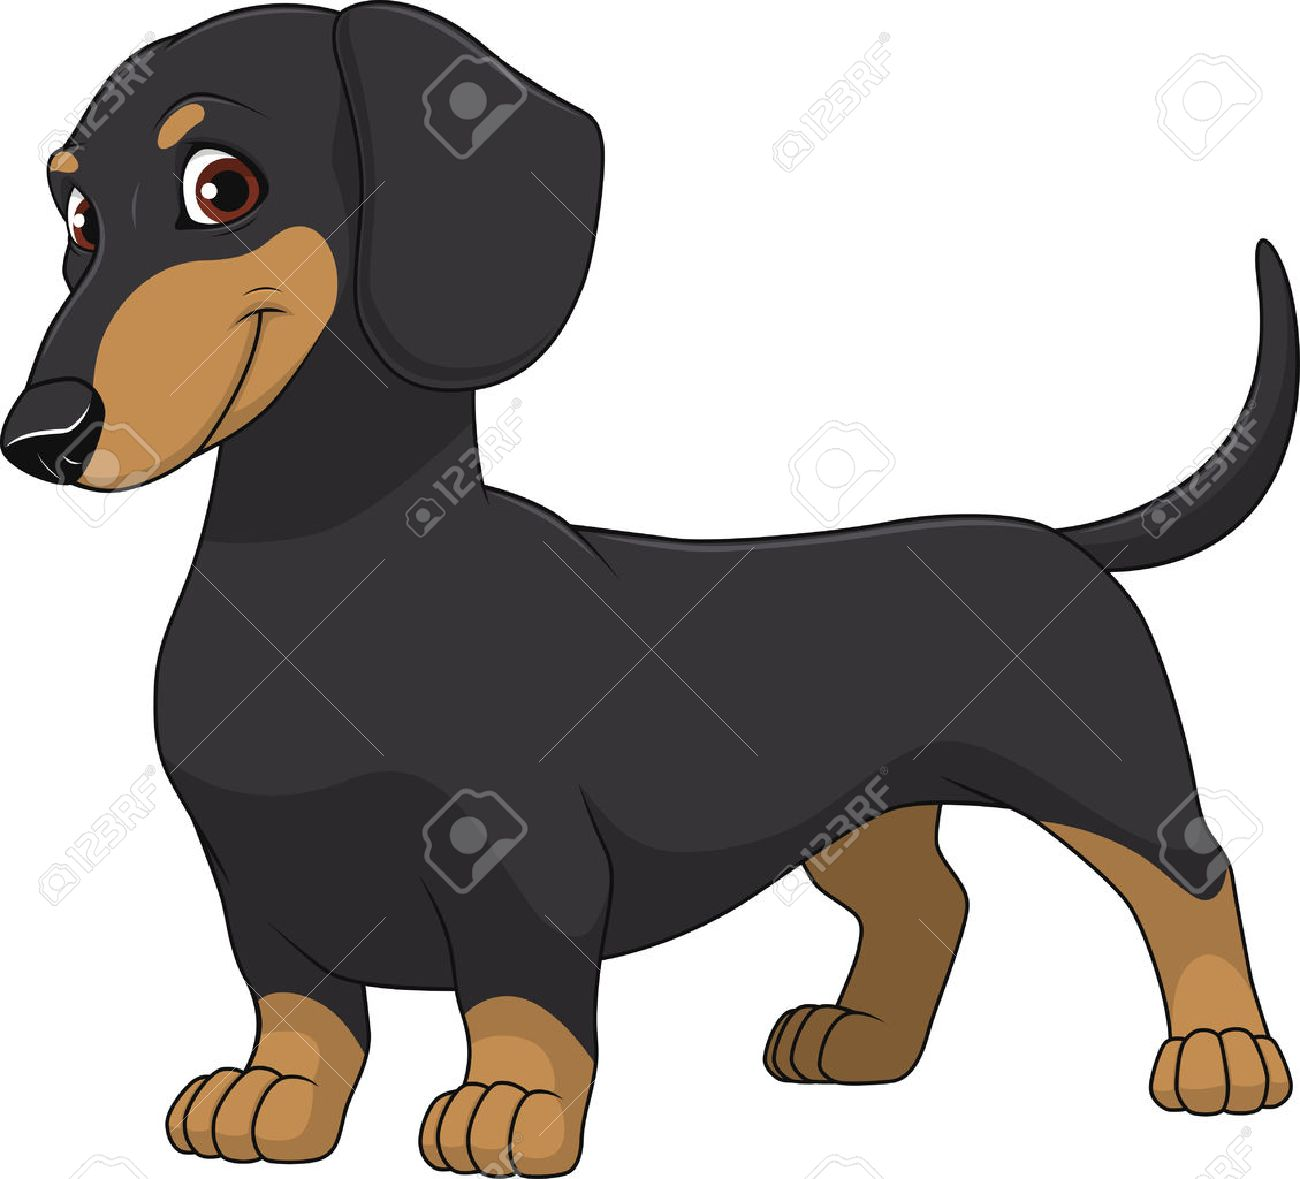 5 600 dachshund stock illustrations cliparts and royalty free rh 123rf com dachshund clipart black and white dachshund clipart pictures